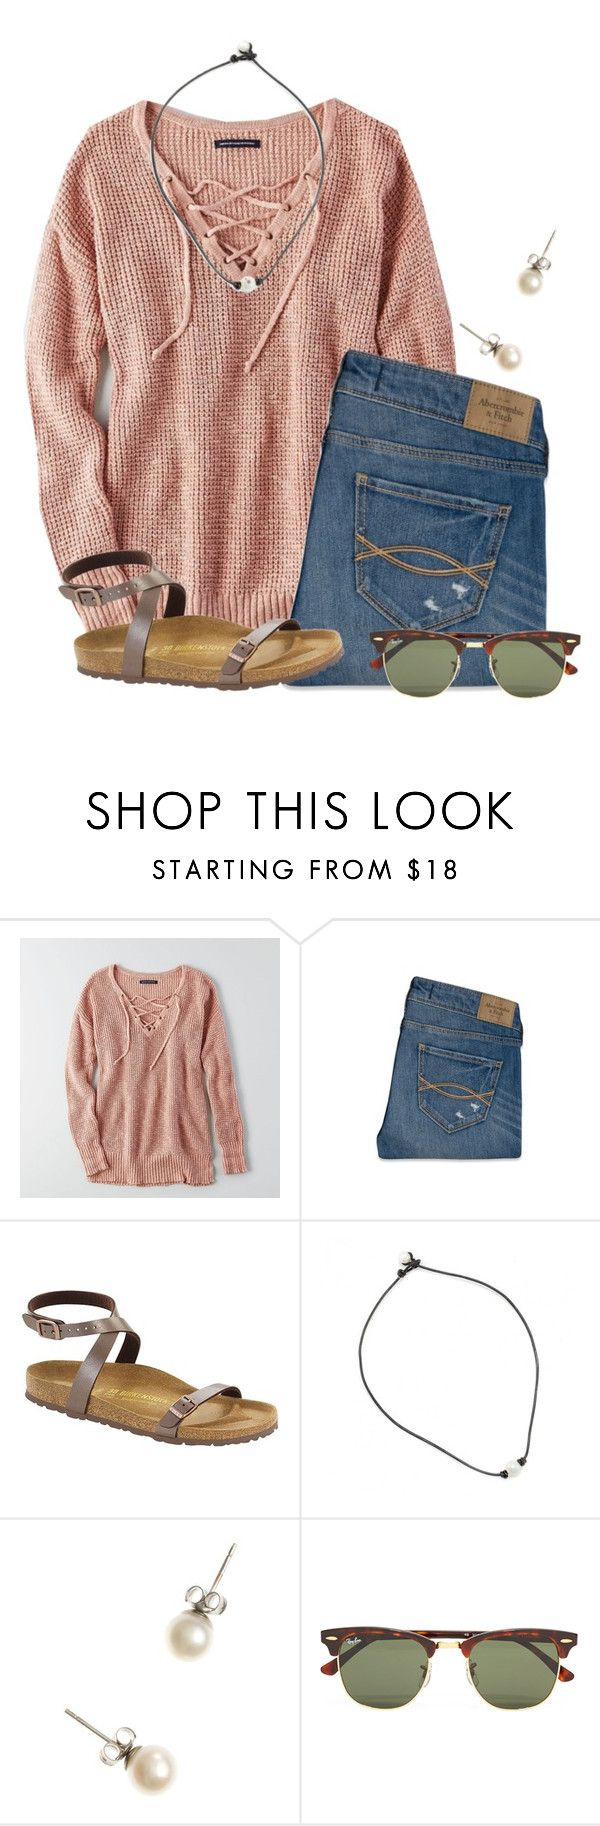 """Merry Christmas!!!!! "" by flroasburn ❤ liked on Polyvore featuring American Eagle Outfitters, Abercrombie & Fitch, Birkenstock, J.Crew and Ray-Ban"